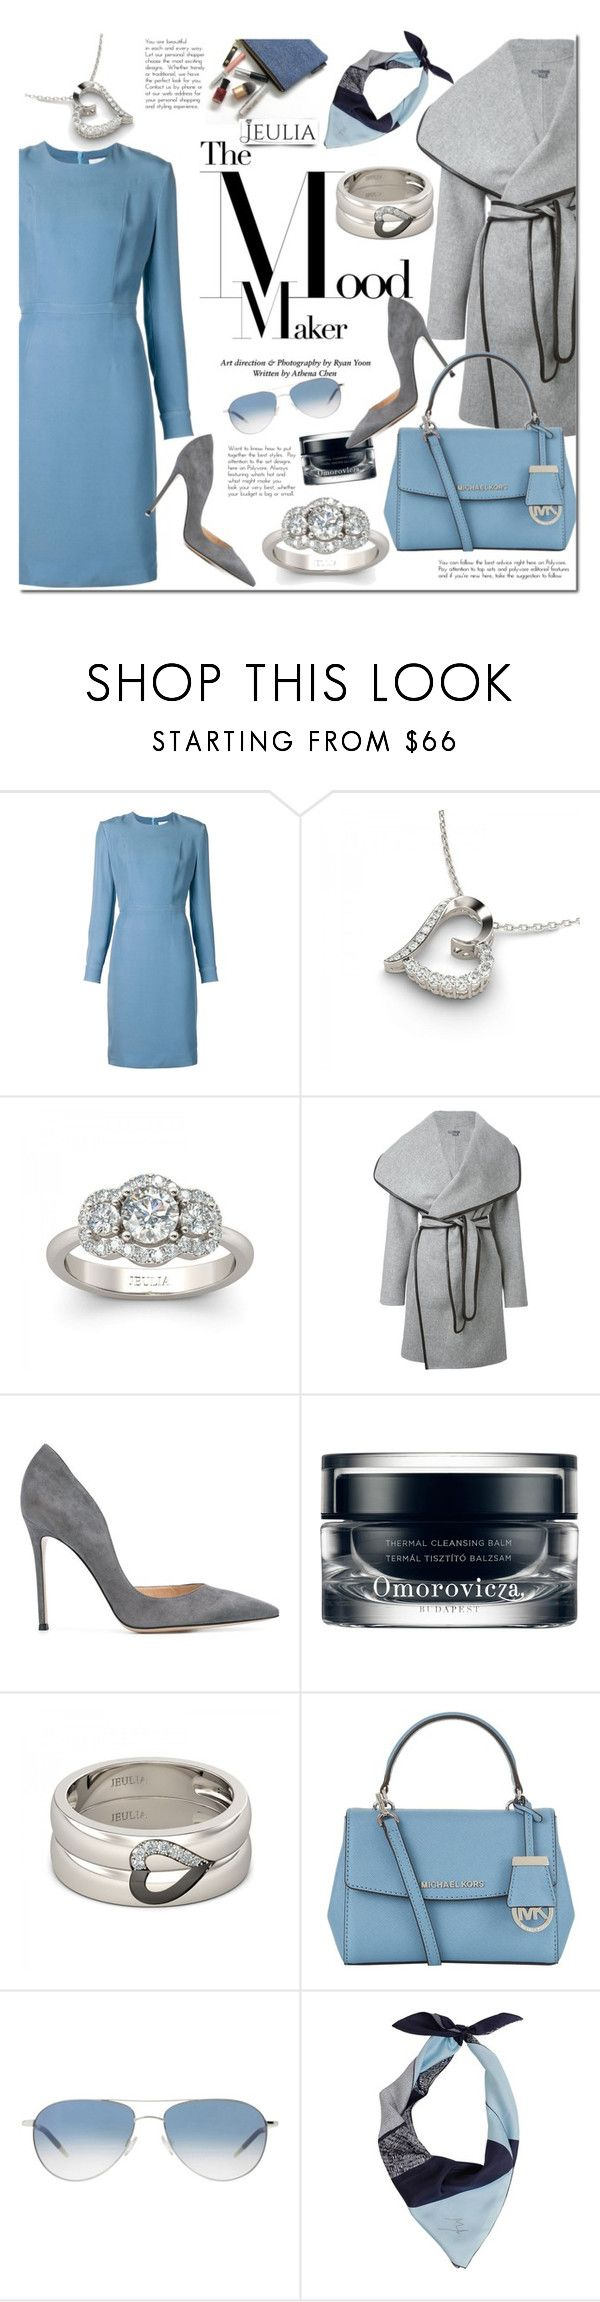 """Jeulia"" by mada-malureanu ❤ liked on Polyvore featuring Alexander Lewis, Vince, Gianvito Rossi, Omorovicza, MICHAEL Michael Kors, Oliver Peoples, women's clothing, women's fashion, women and female"